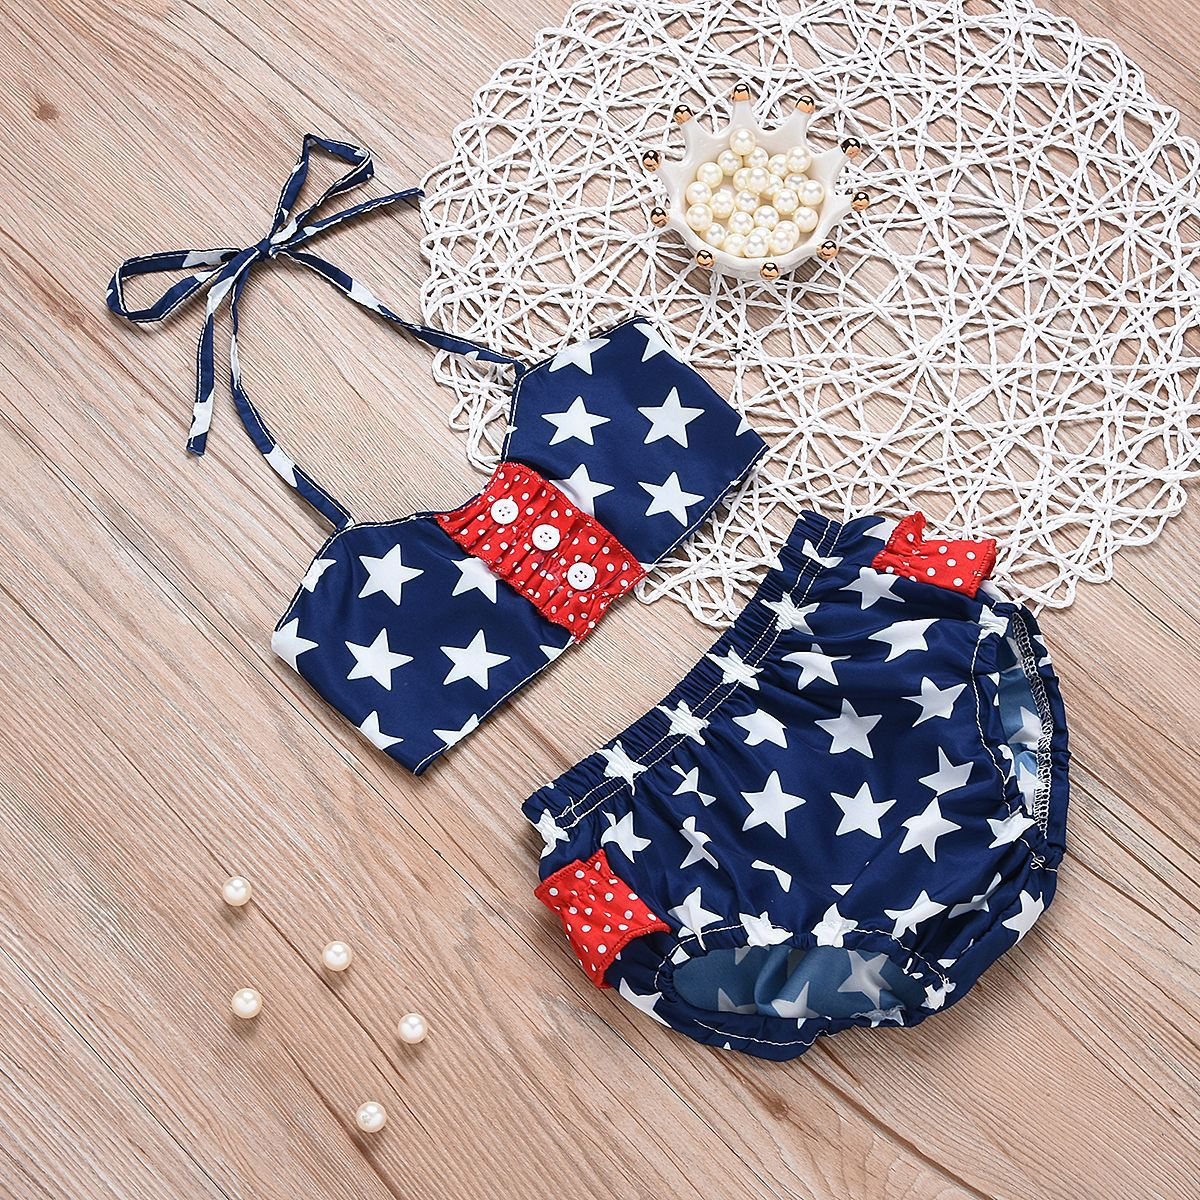 2019 CHILDREN'S Swimsuit Star Dotted Bikini CHILDREN'S Swimsuit Set